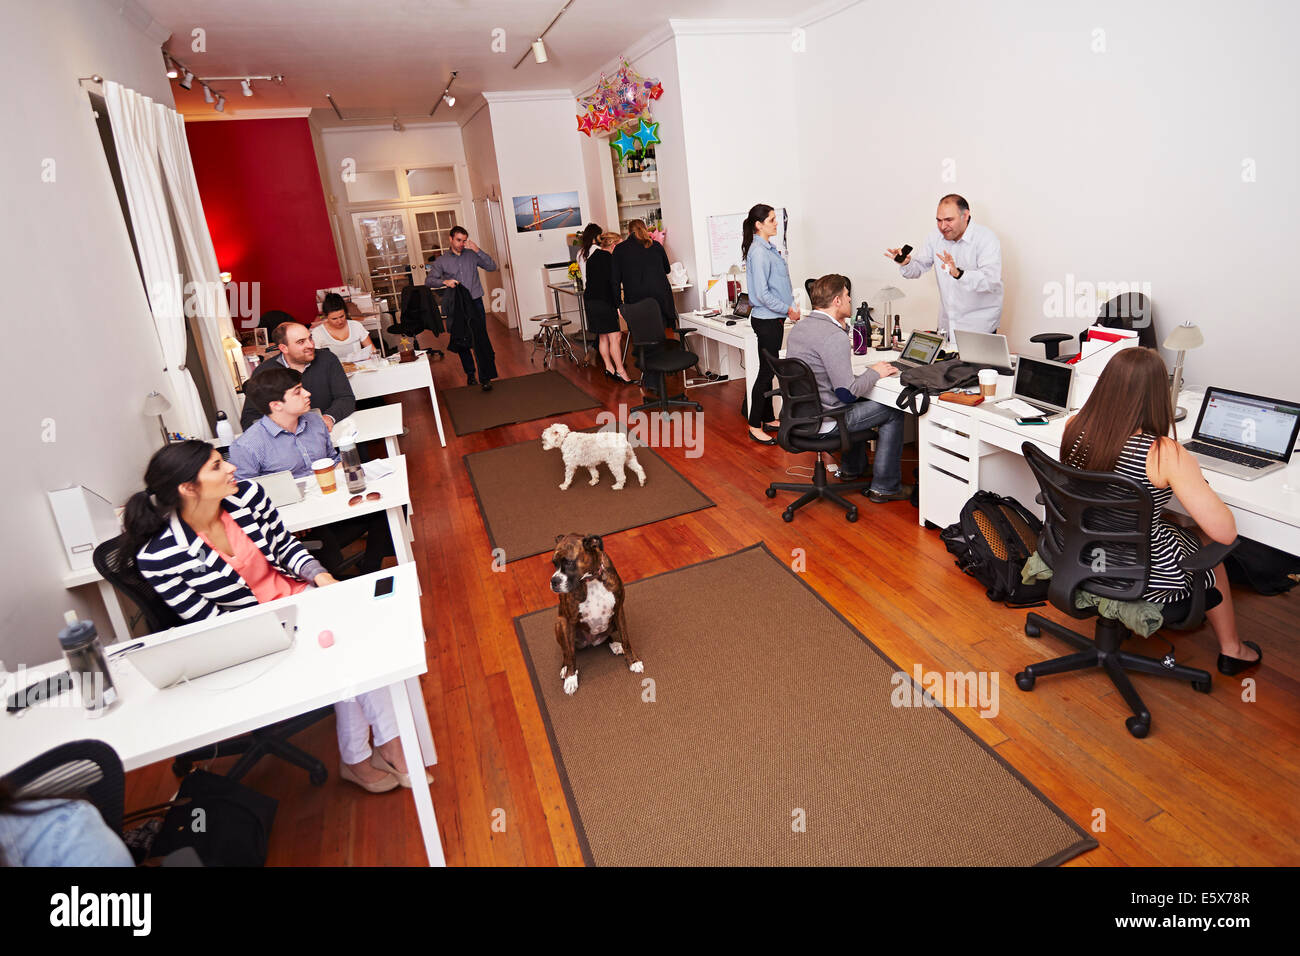 People at work in a modern office with dogs - Stock Image